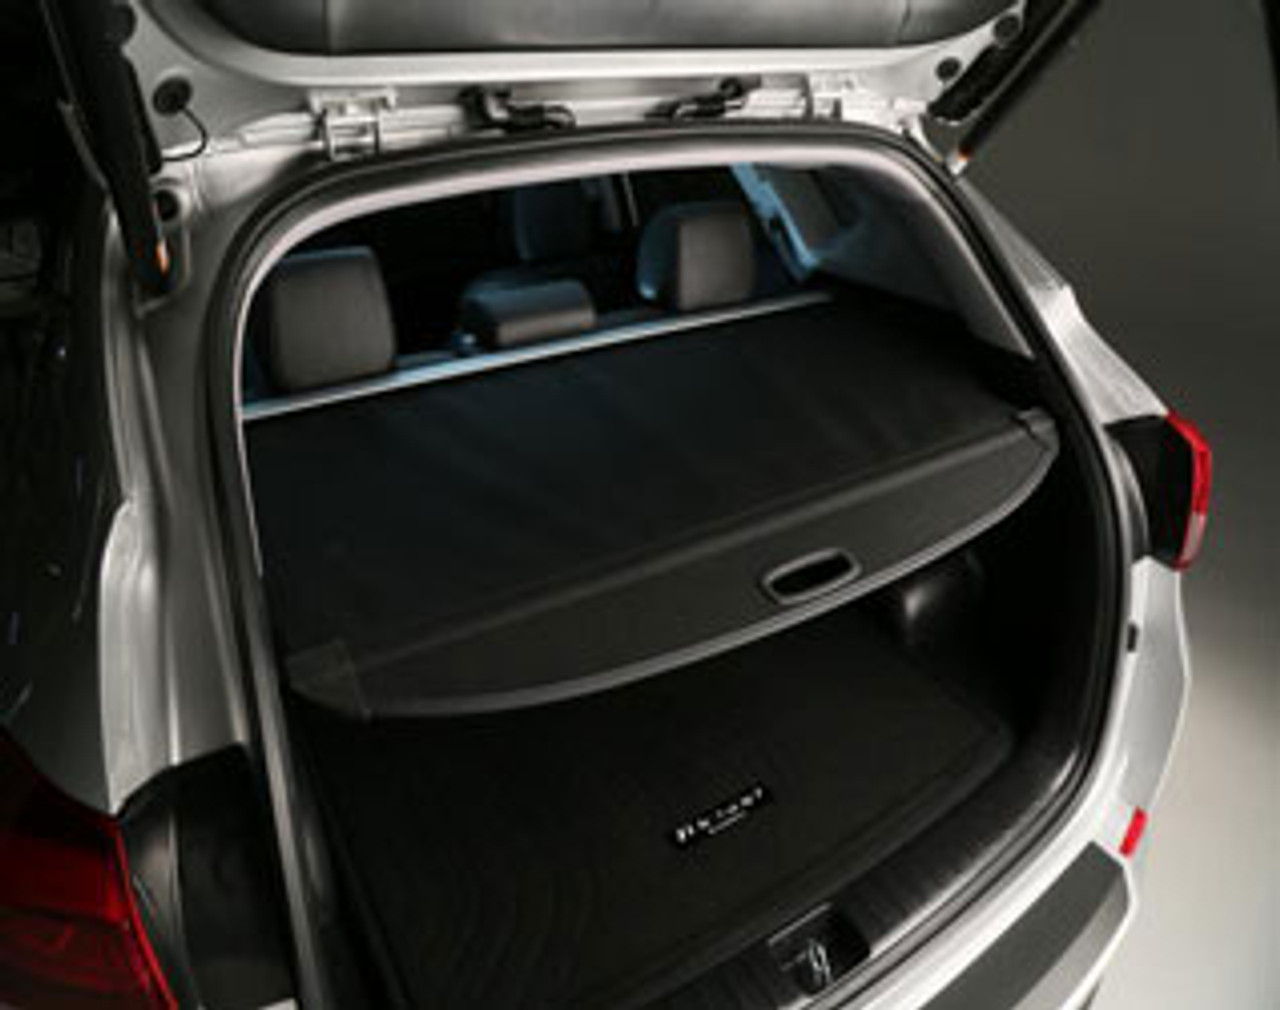 Powerty Retractable Cargo Cover for Hyundai Tucson 2016-2019 2020 Trunk Shielding Shade/Cargo Luggage Cover/ Updated Version:no Gap